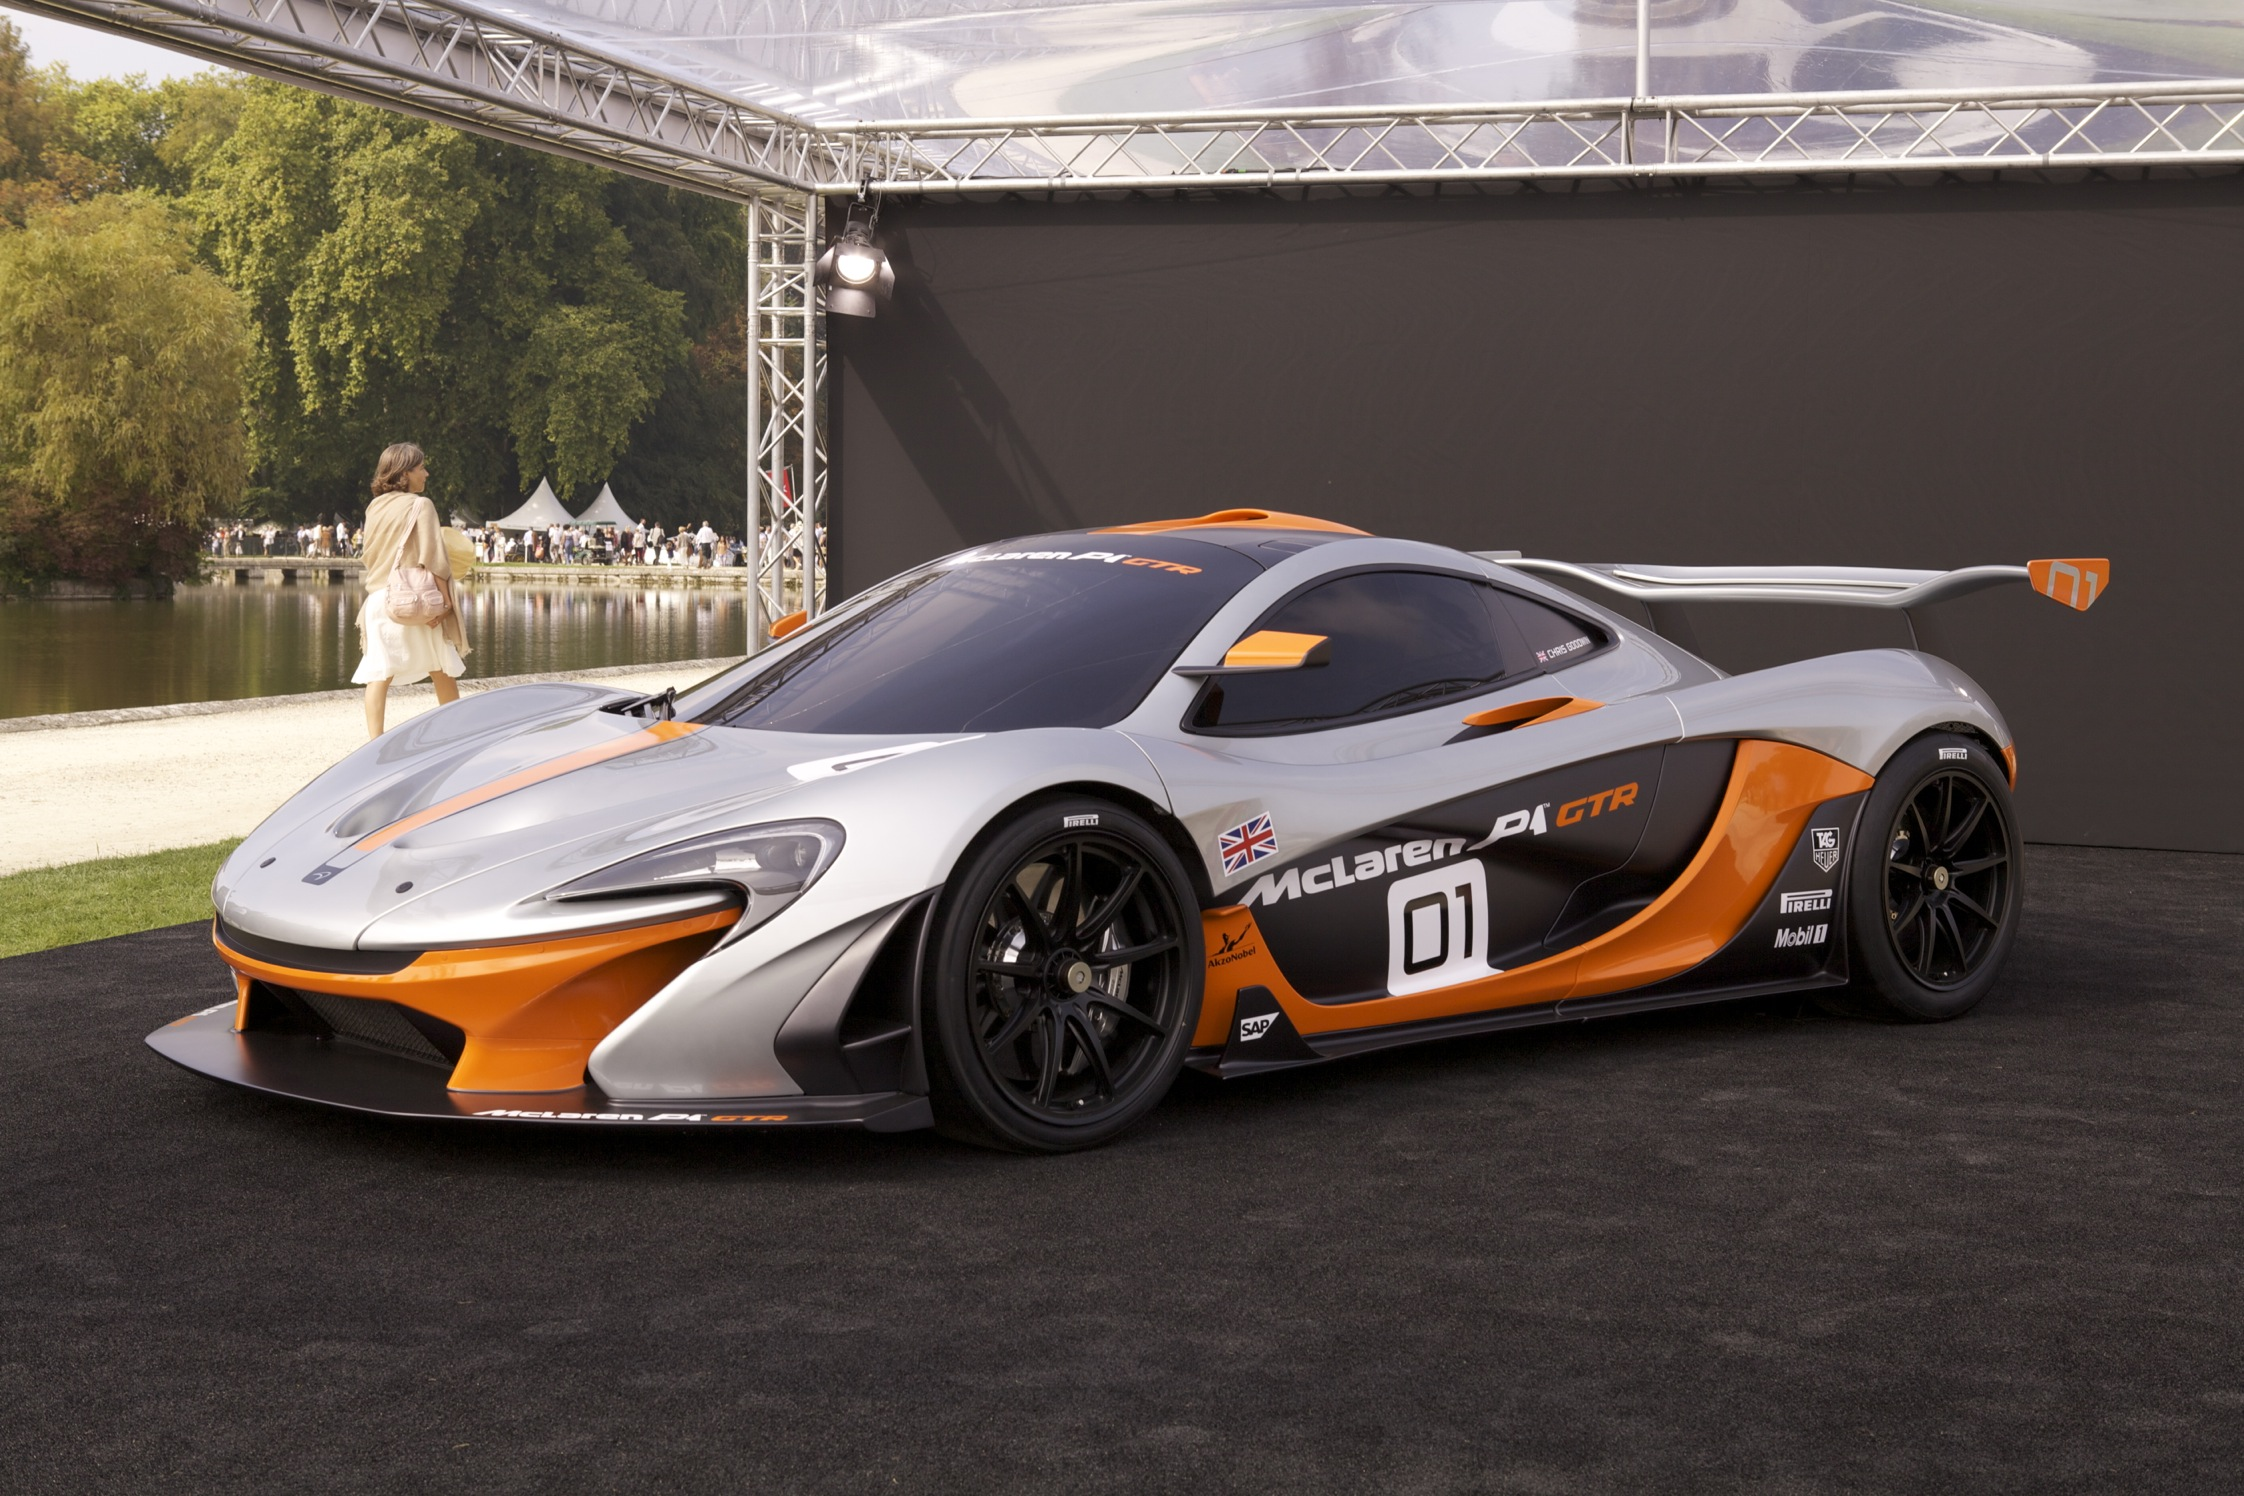 2010 mclaren p1 gtr concept car pictures. Black Bedroom Furniture Sets. Home Design Ideas